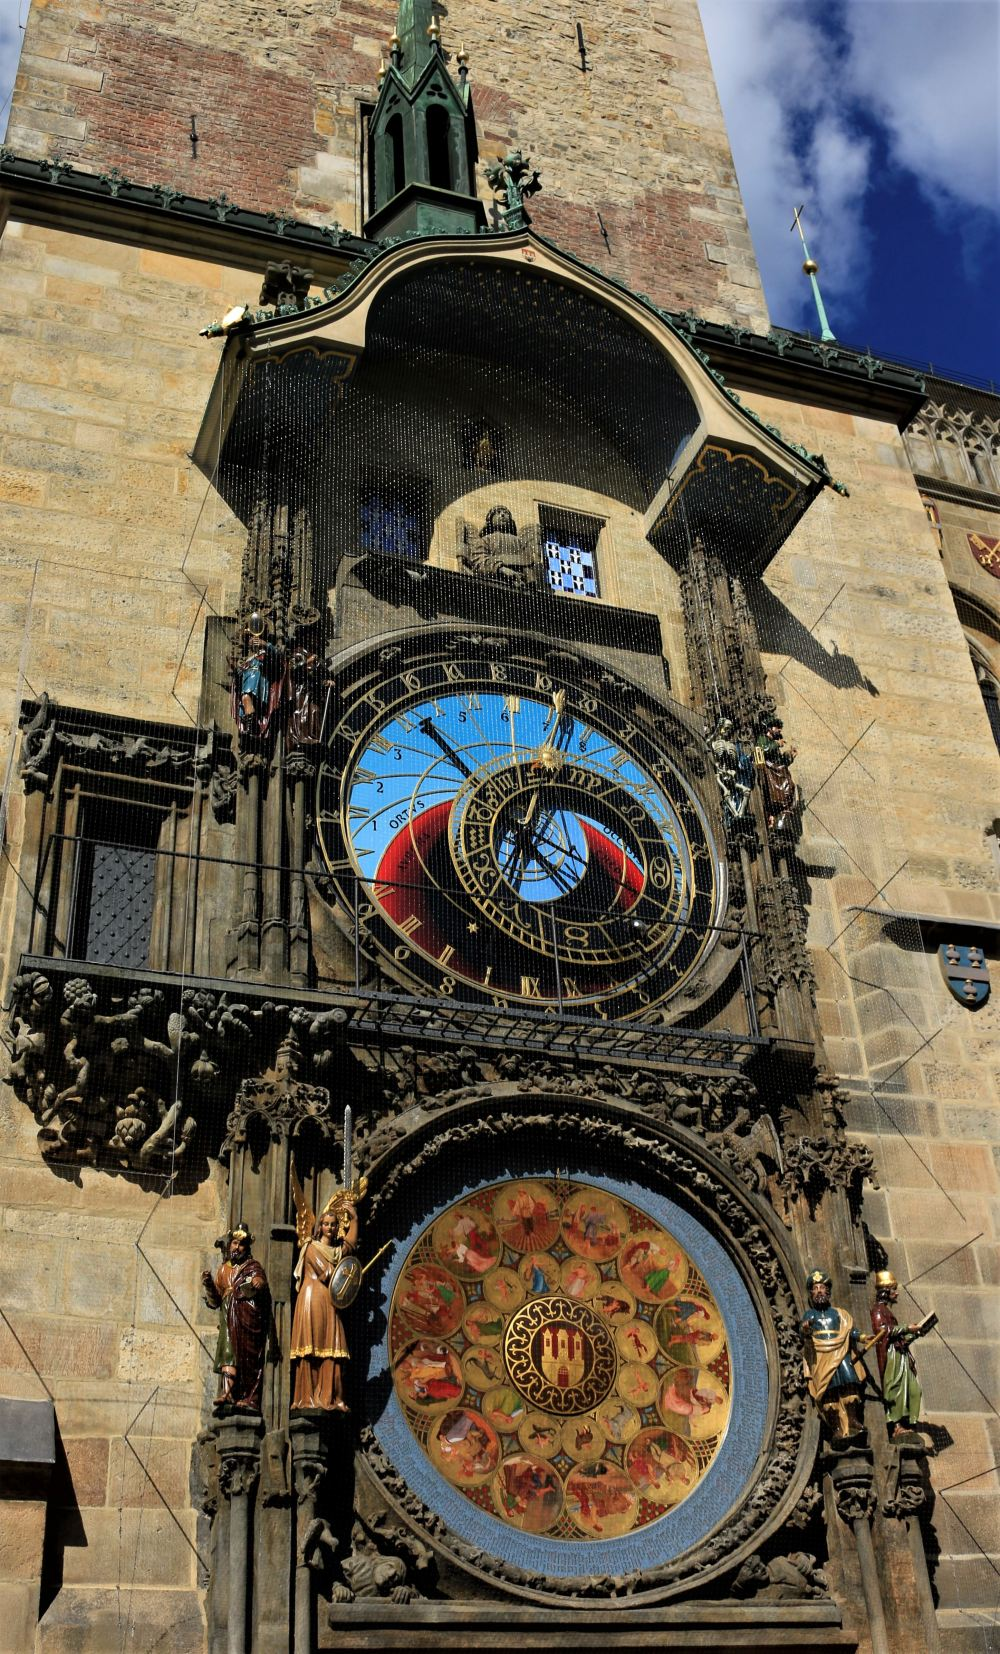 Astronomical Clock at the Old Town Square in Prague